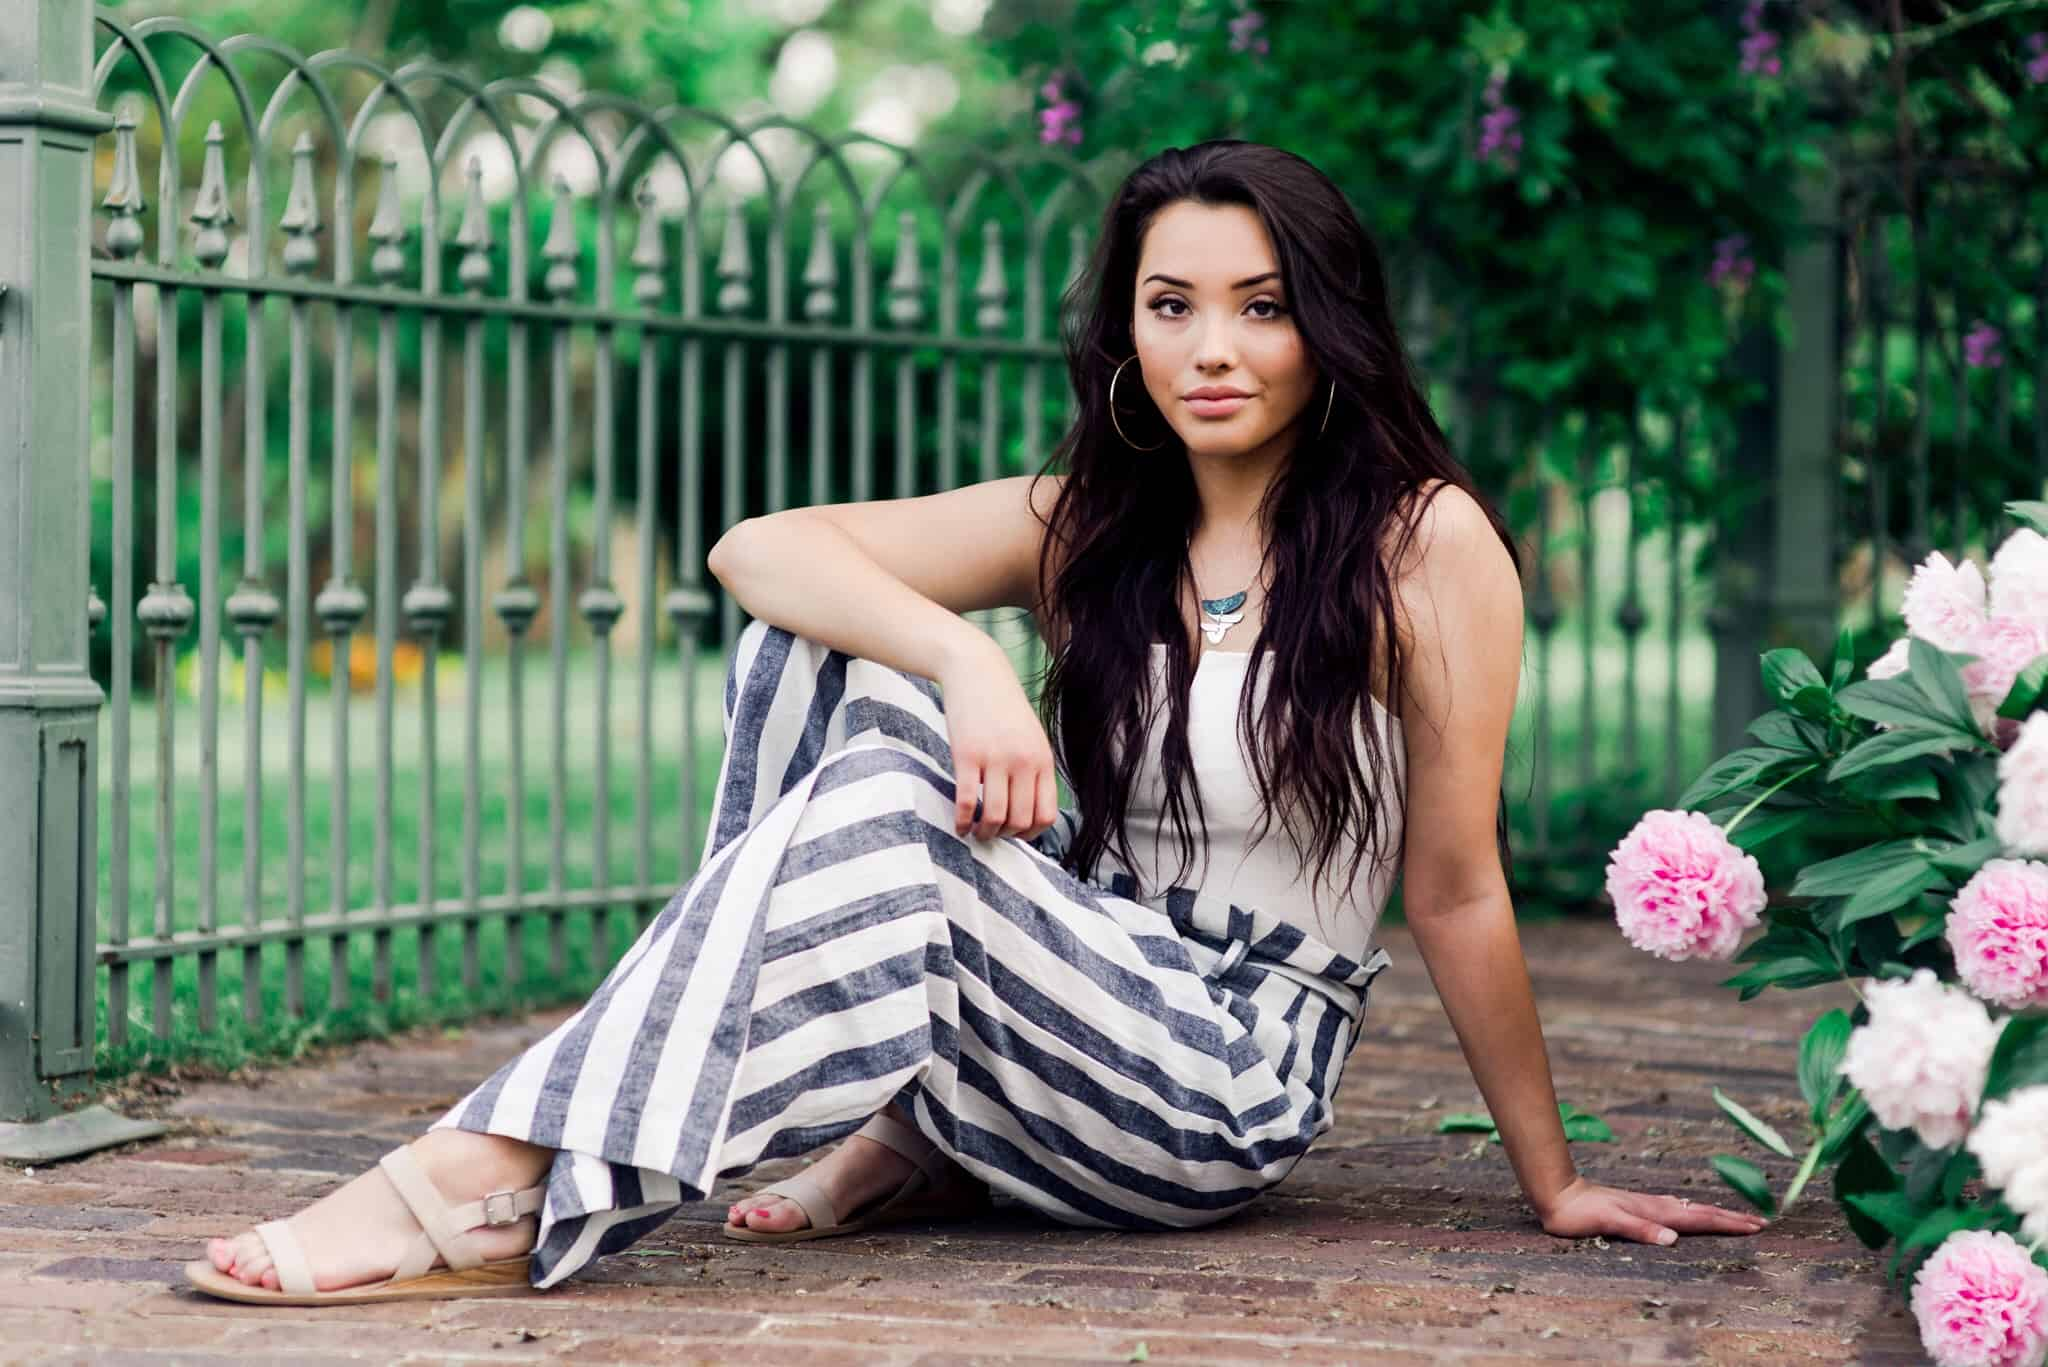 Senior portraits, Gilcrease museum, pink flowers, white flowers, romper